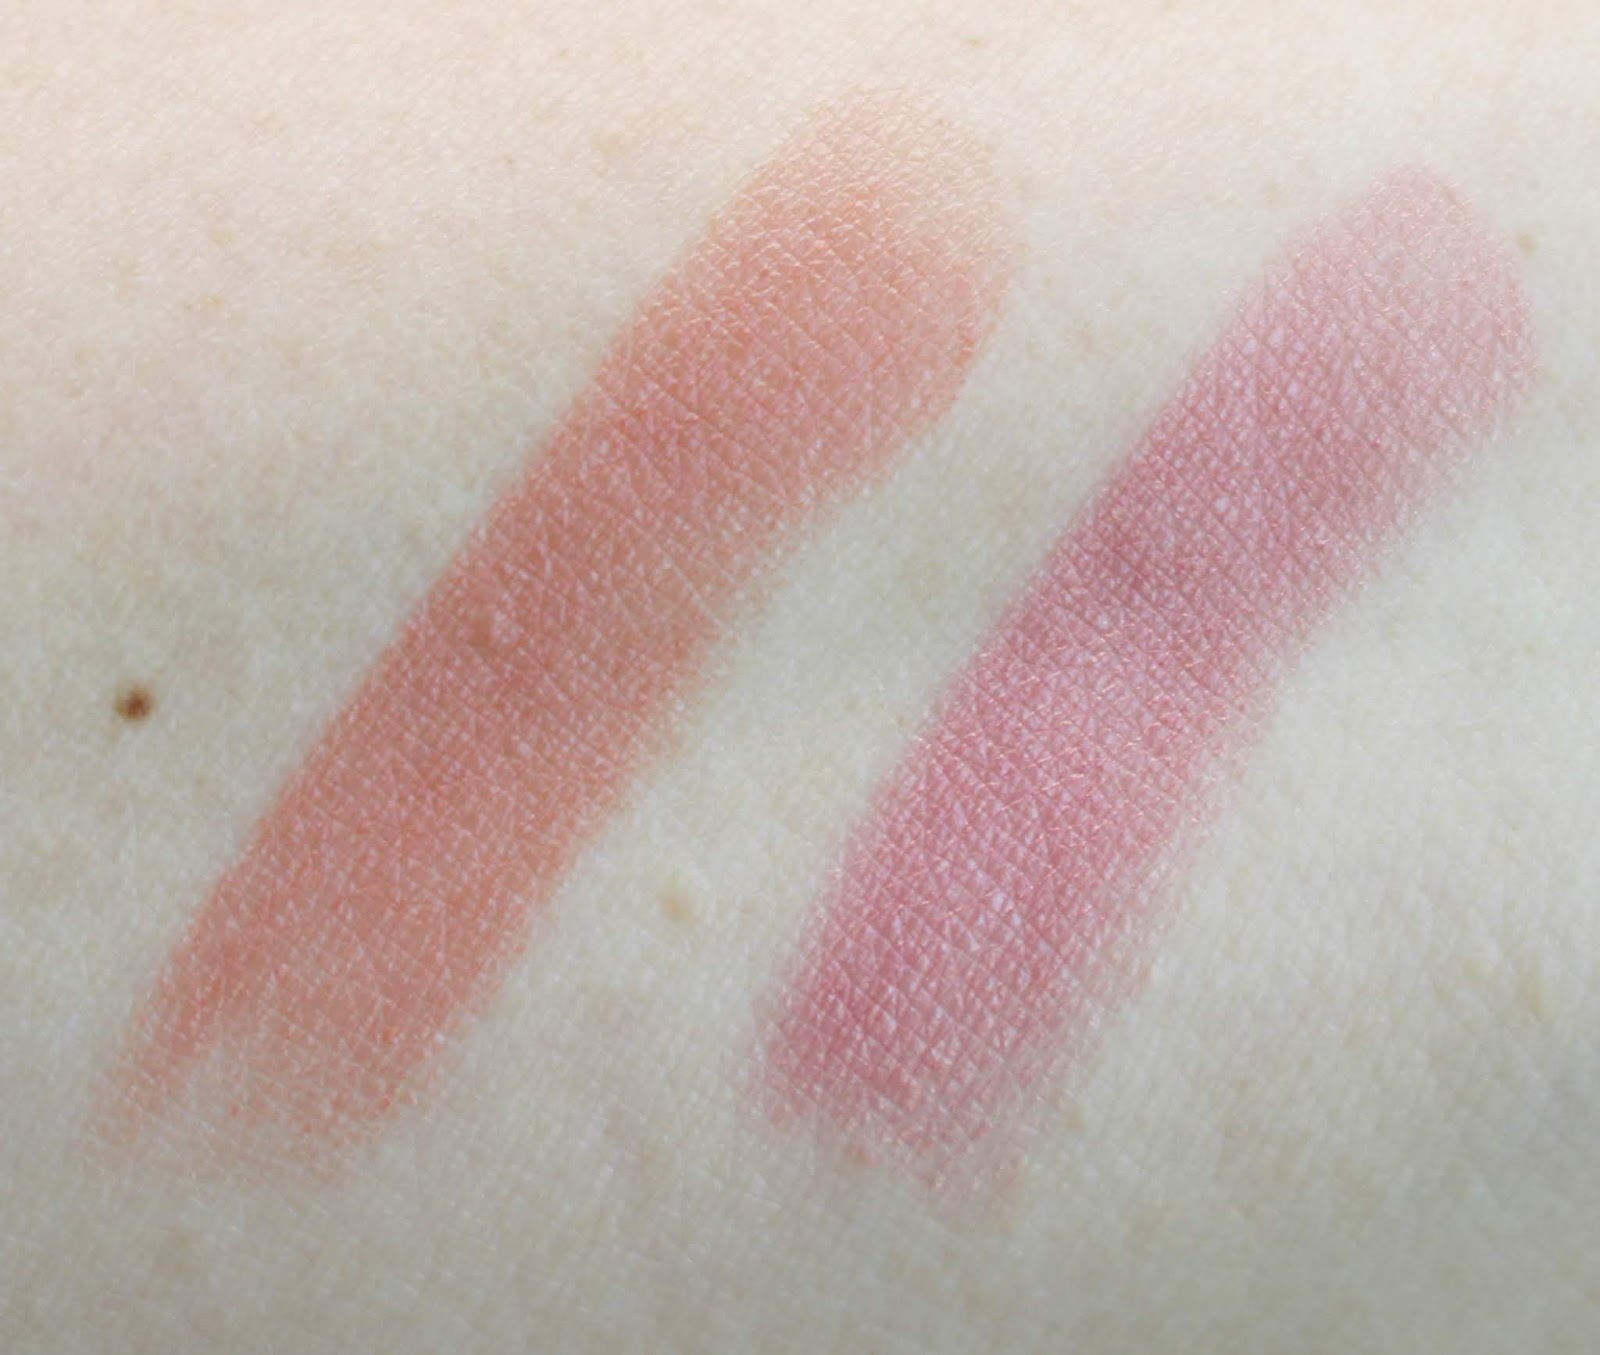 Color Charge Lip Powder - High Fever by Revlon #5